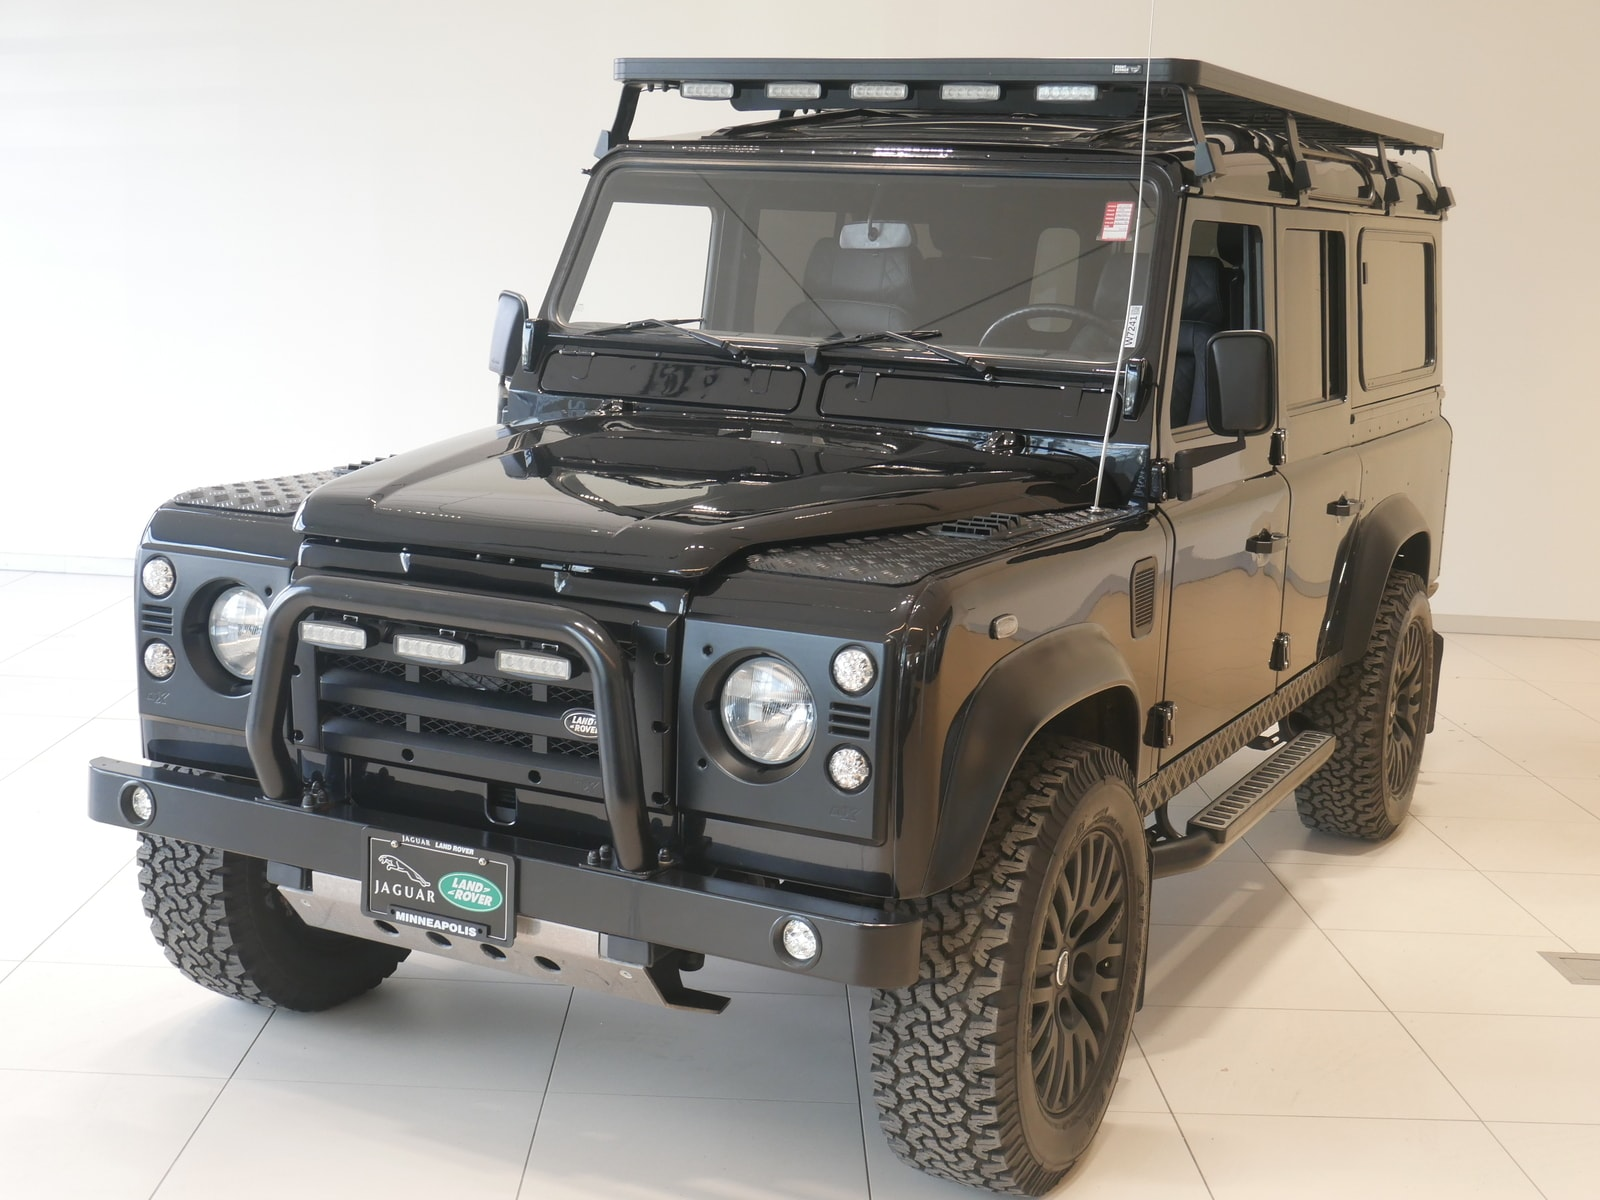 1988 Land Rover Defender 110 Wagon